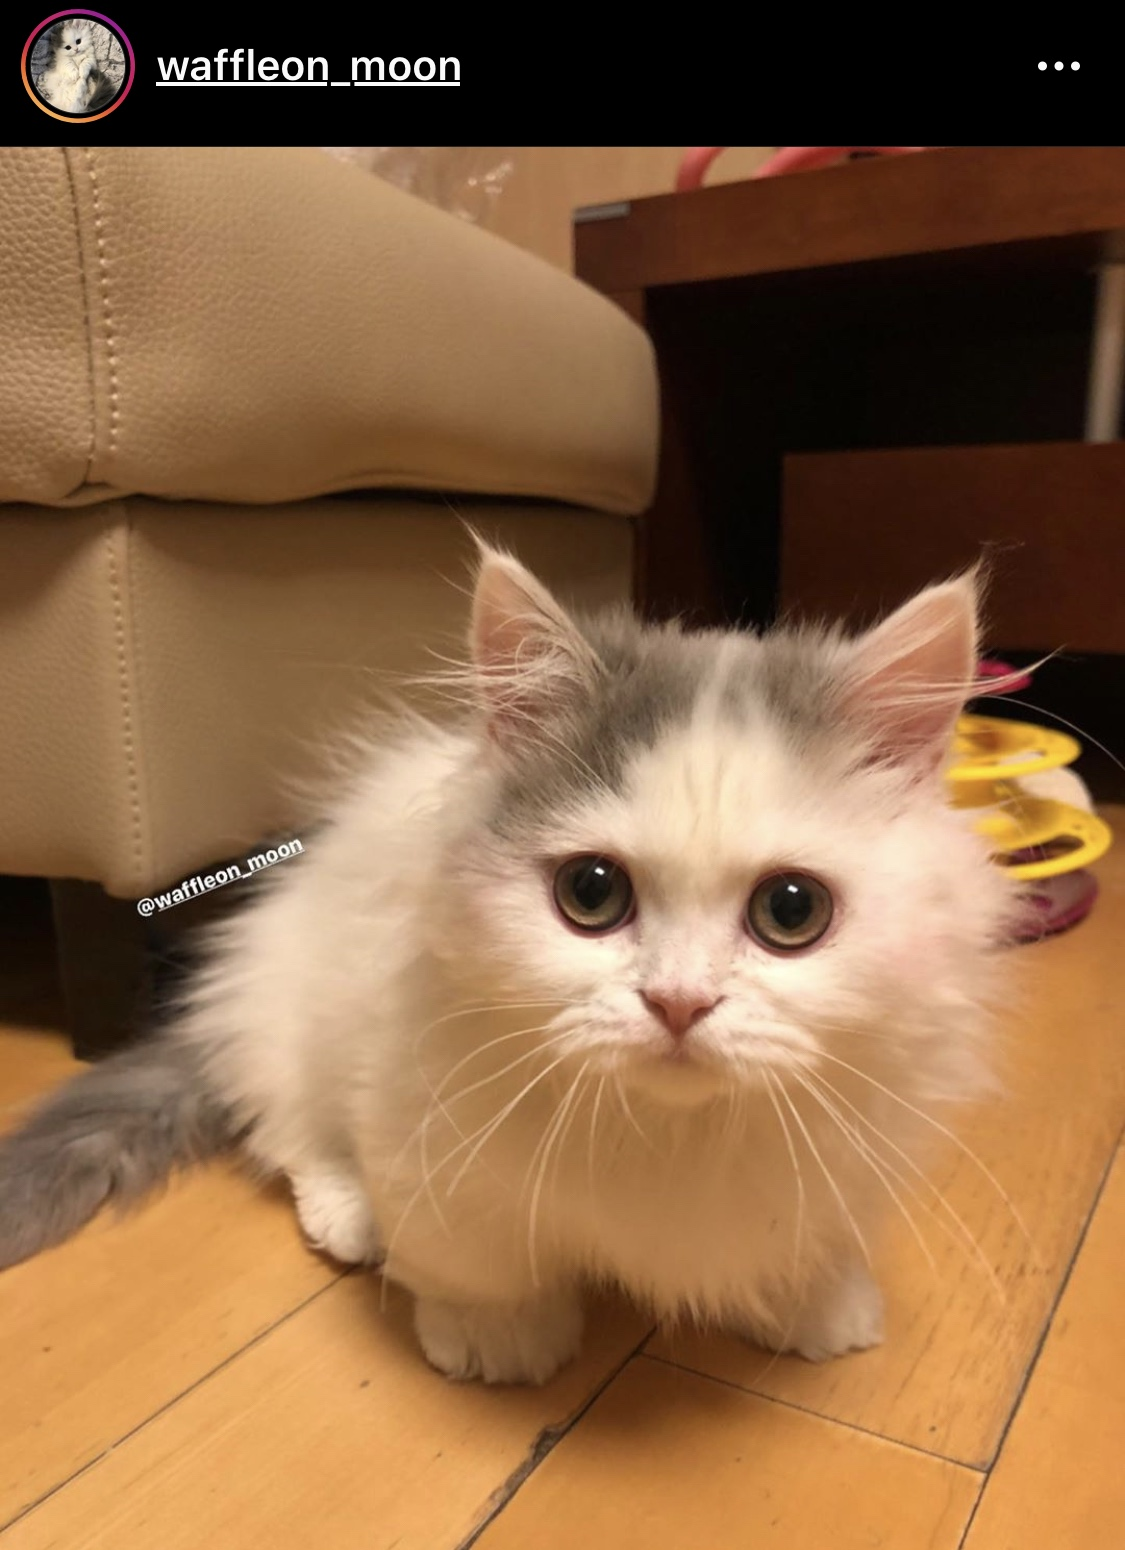 Picture of a fluffy white kitten looking into the camera